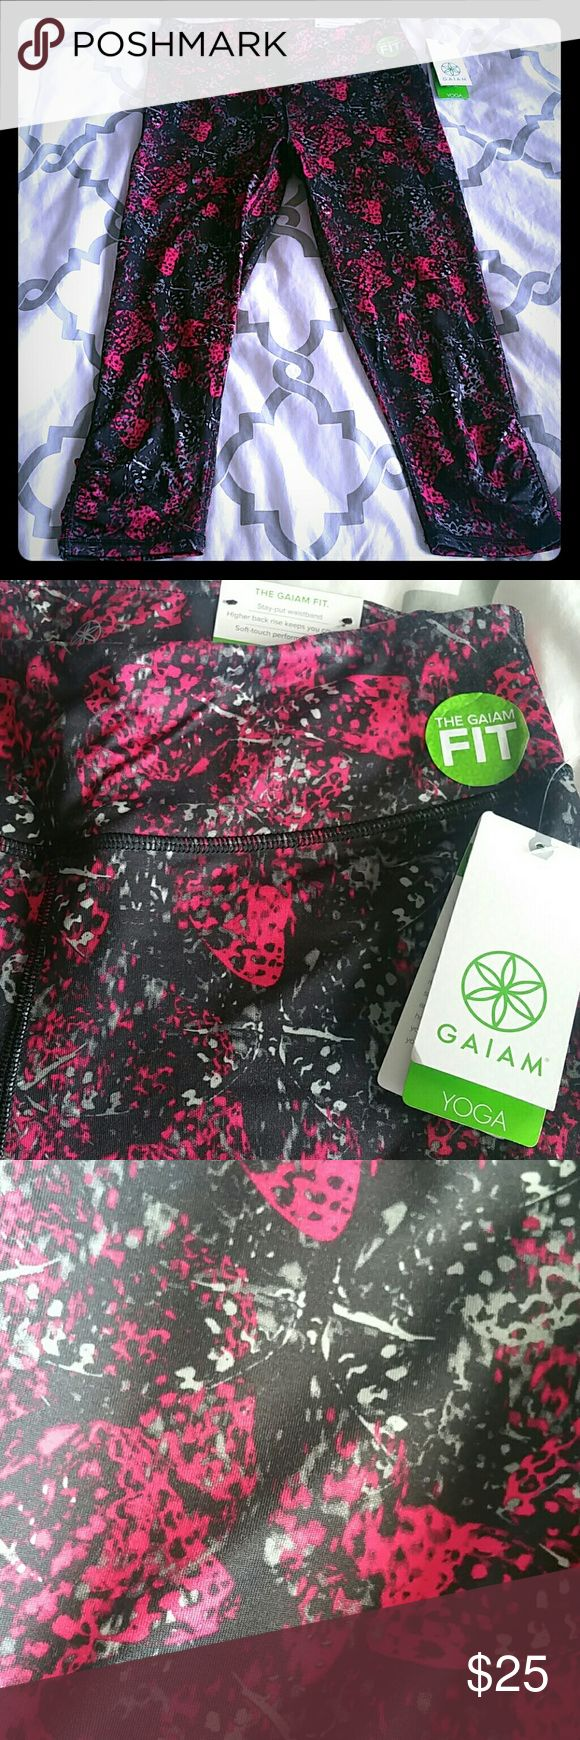 GAIAM YOGA CAPRI! These awesome yoga capris are perfect for any work out you do! Or, throw them on and run those errands looking extra cute! Brand new! Cool colors and design! Happy Shopping! Gaiam Pants Leggings